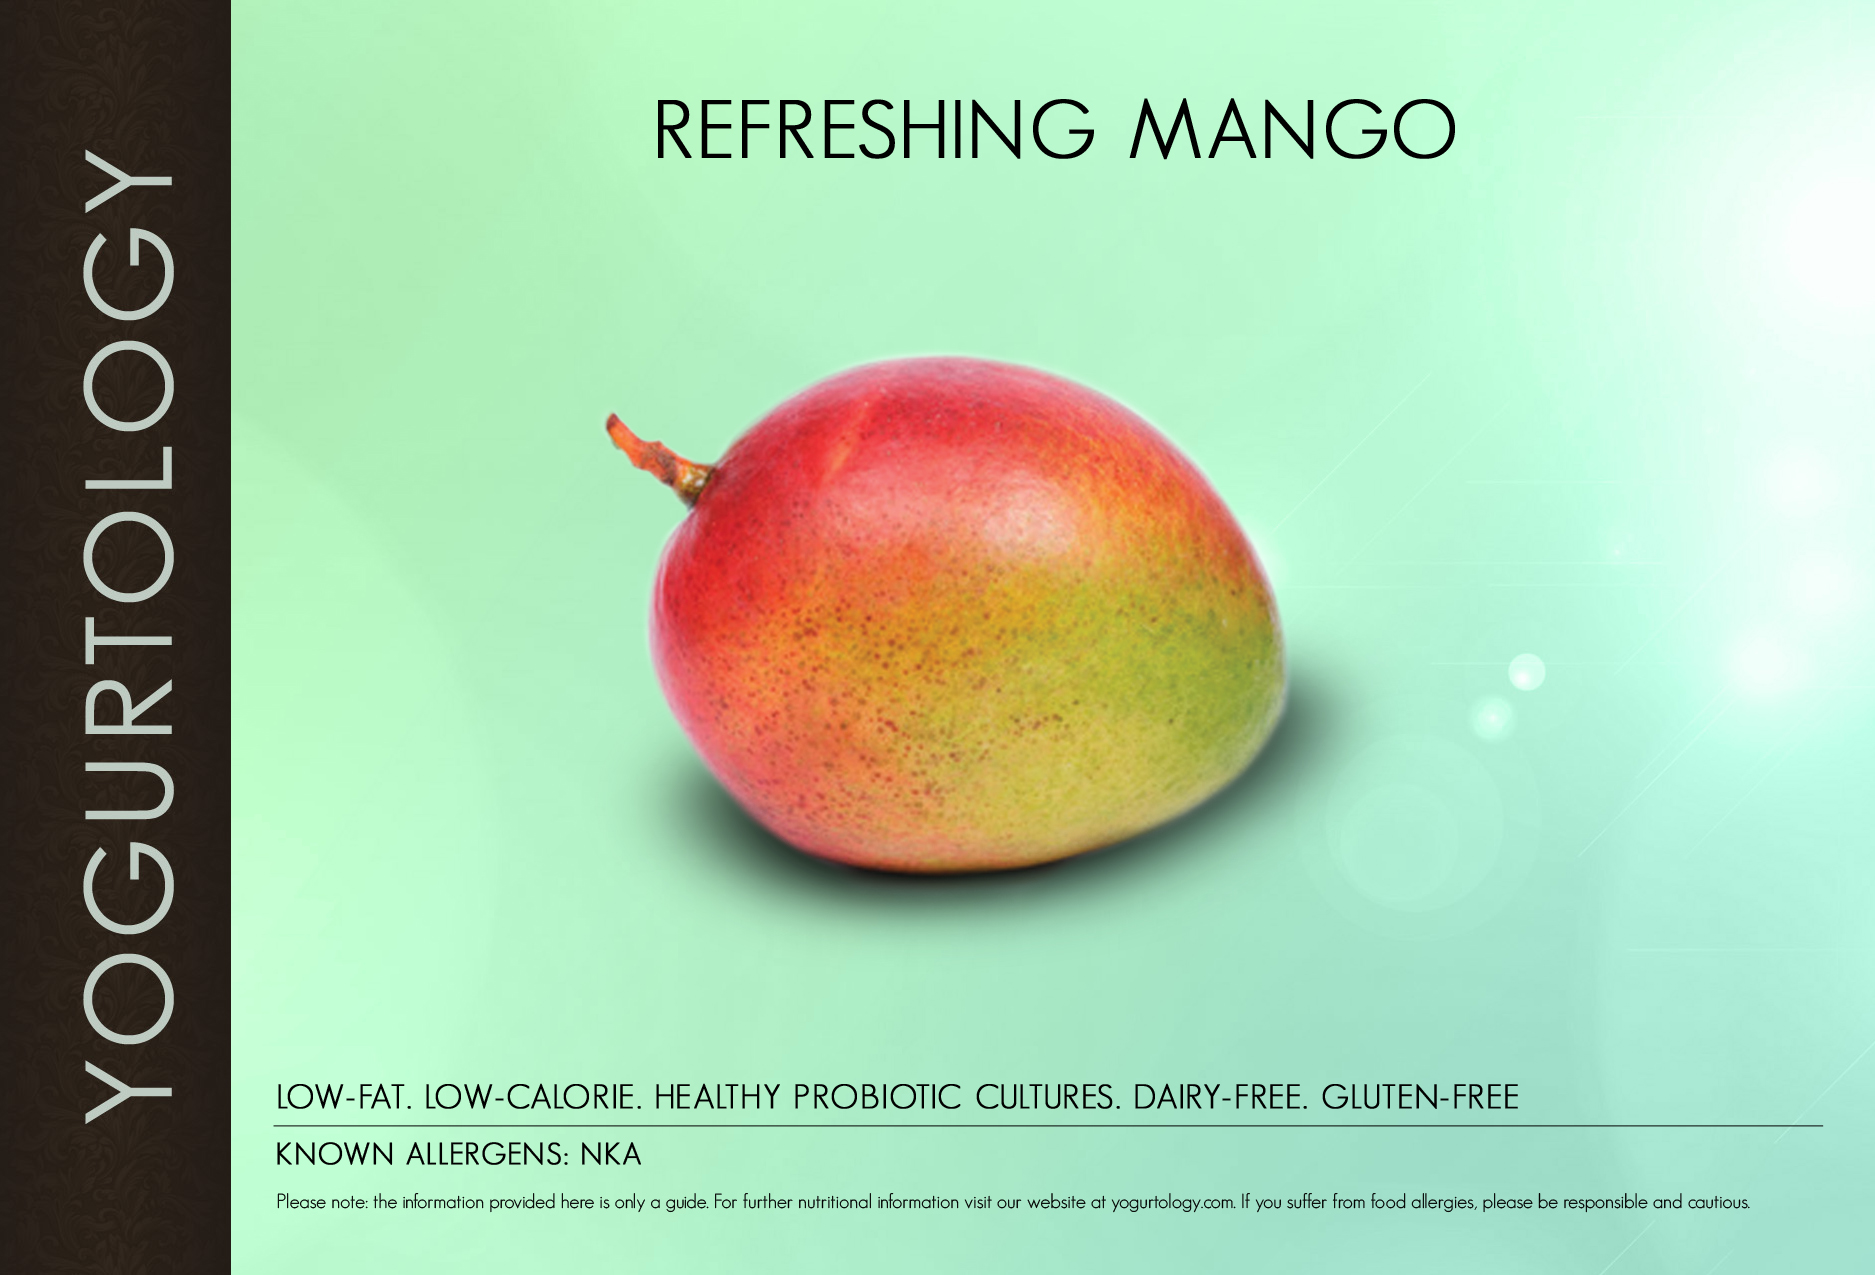 Refreshing Mango